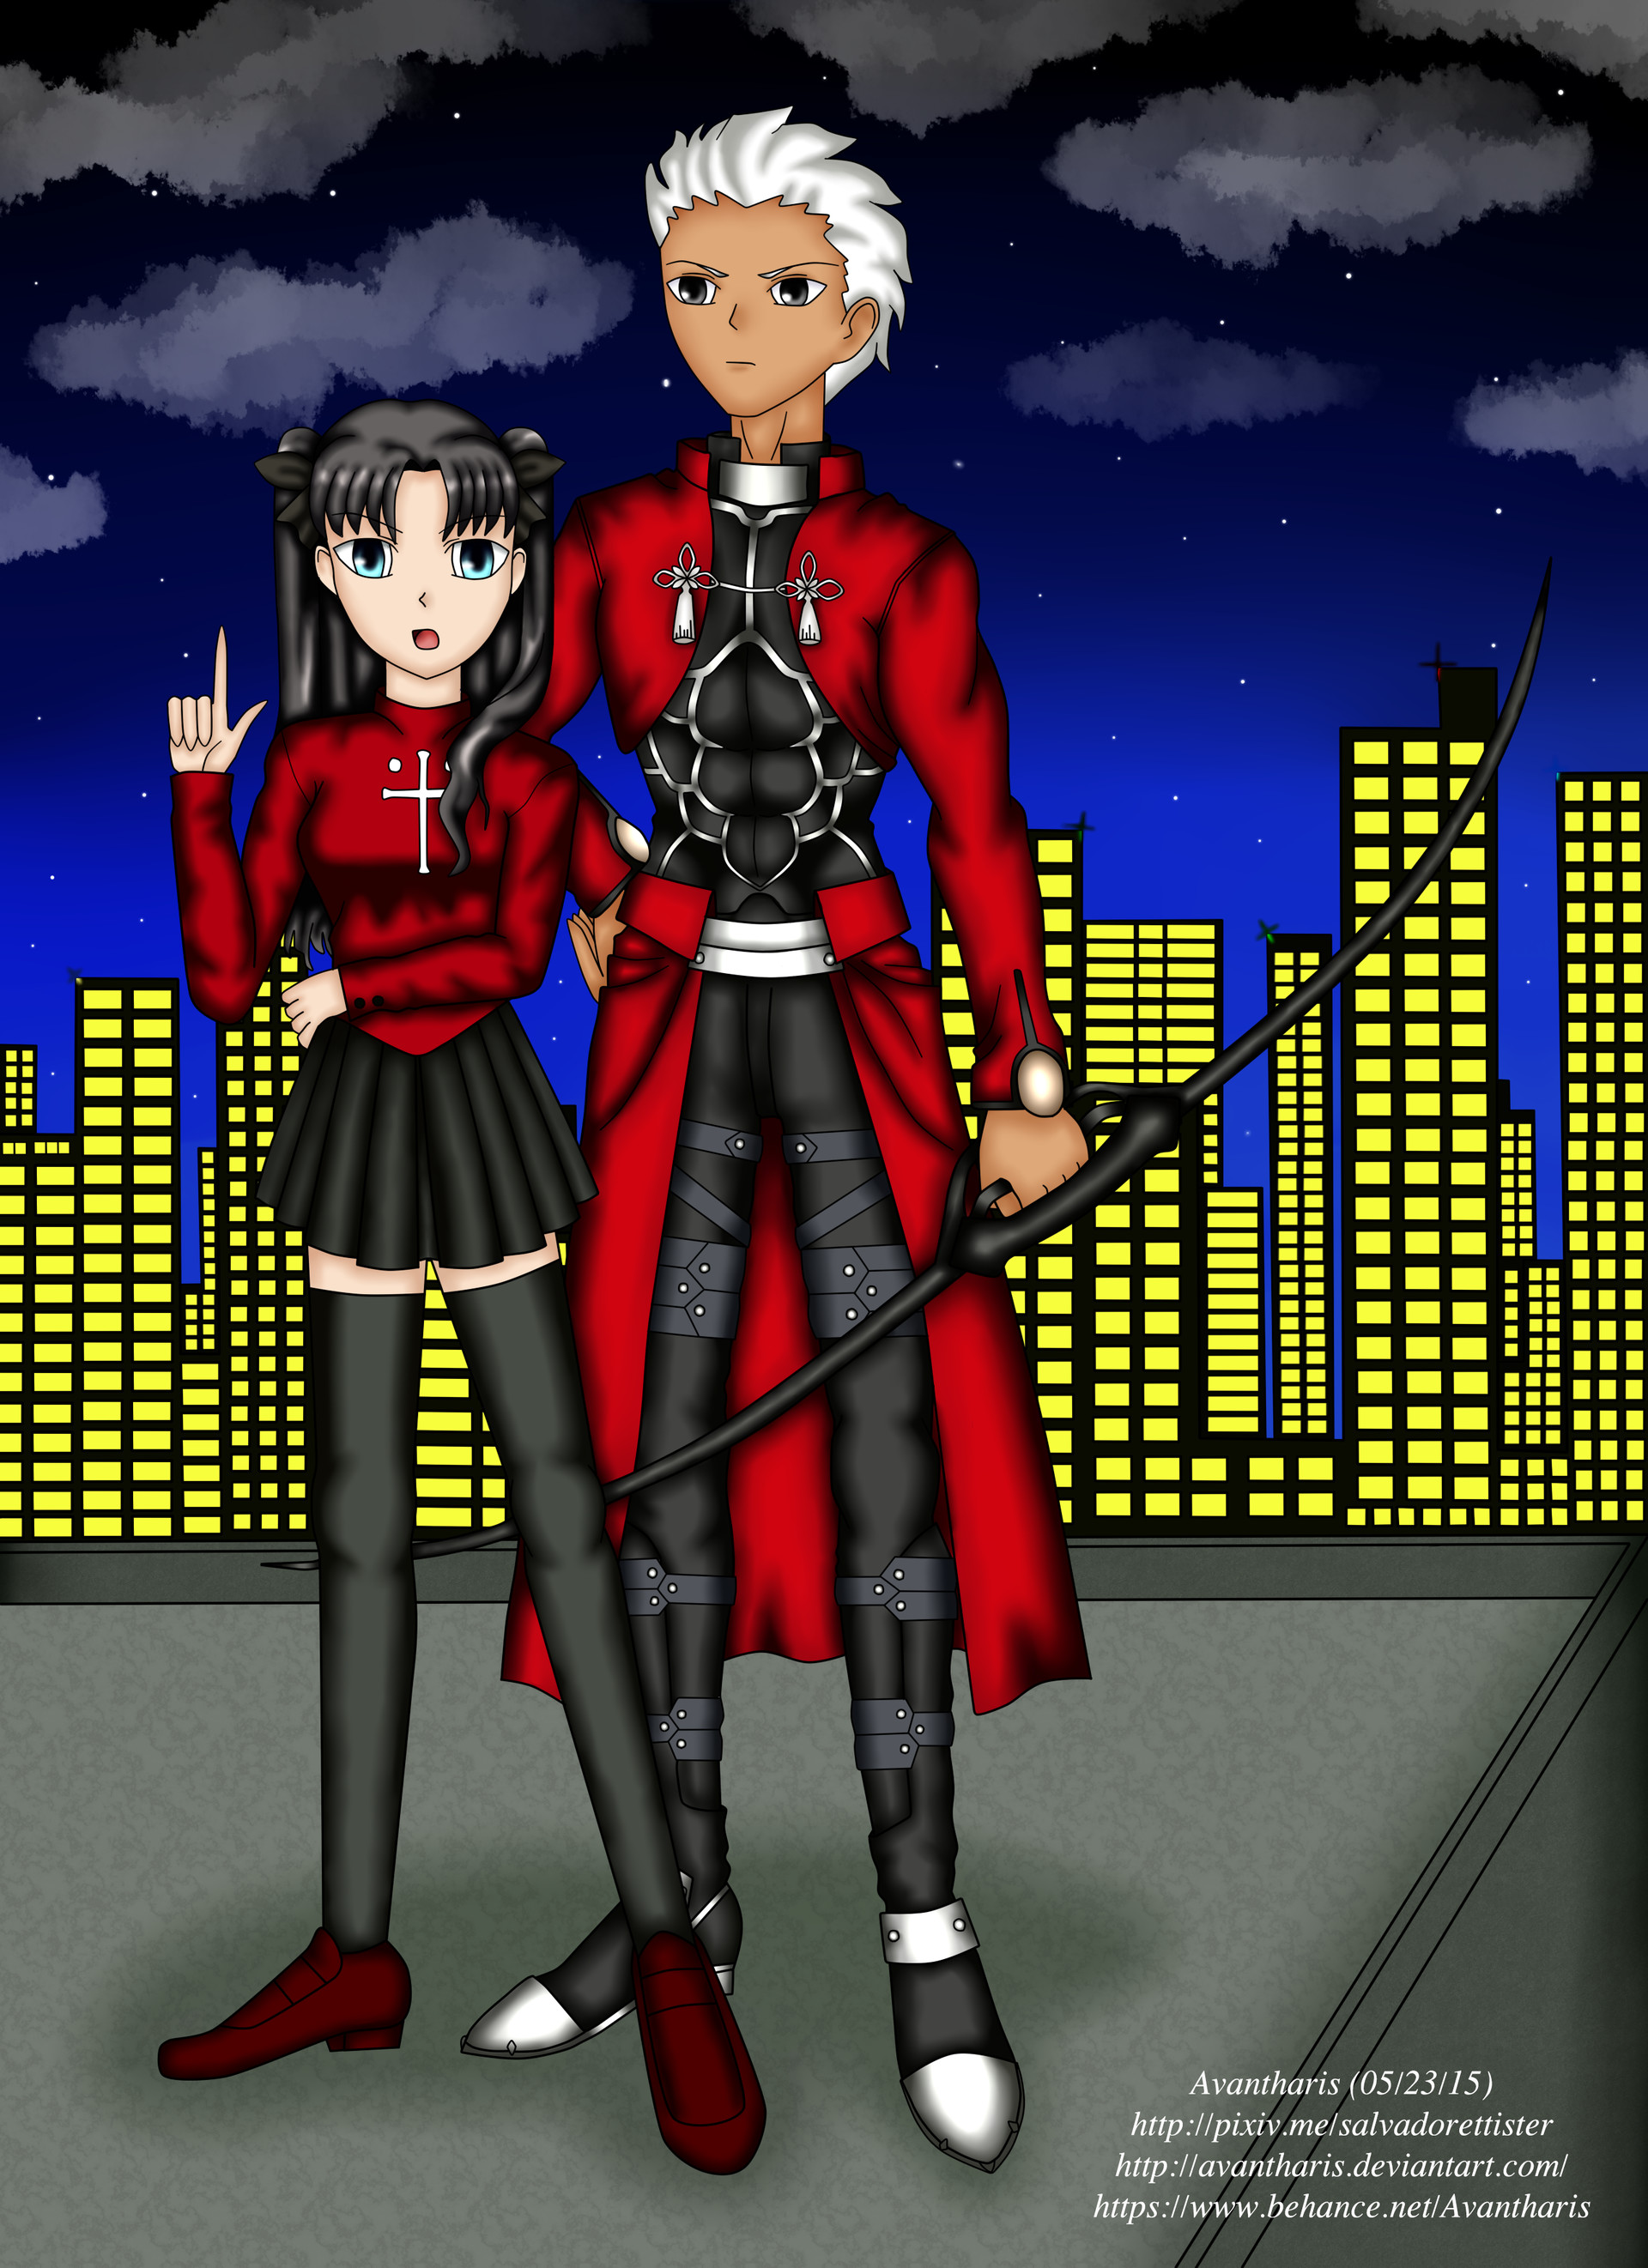 Rin and Archer from Fate/Stay Night